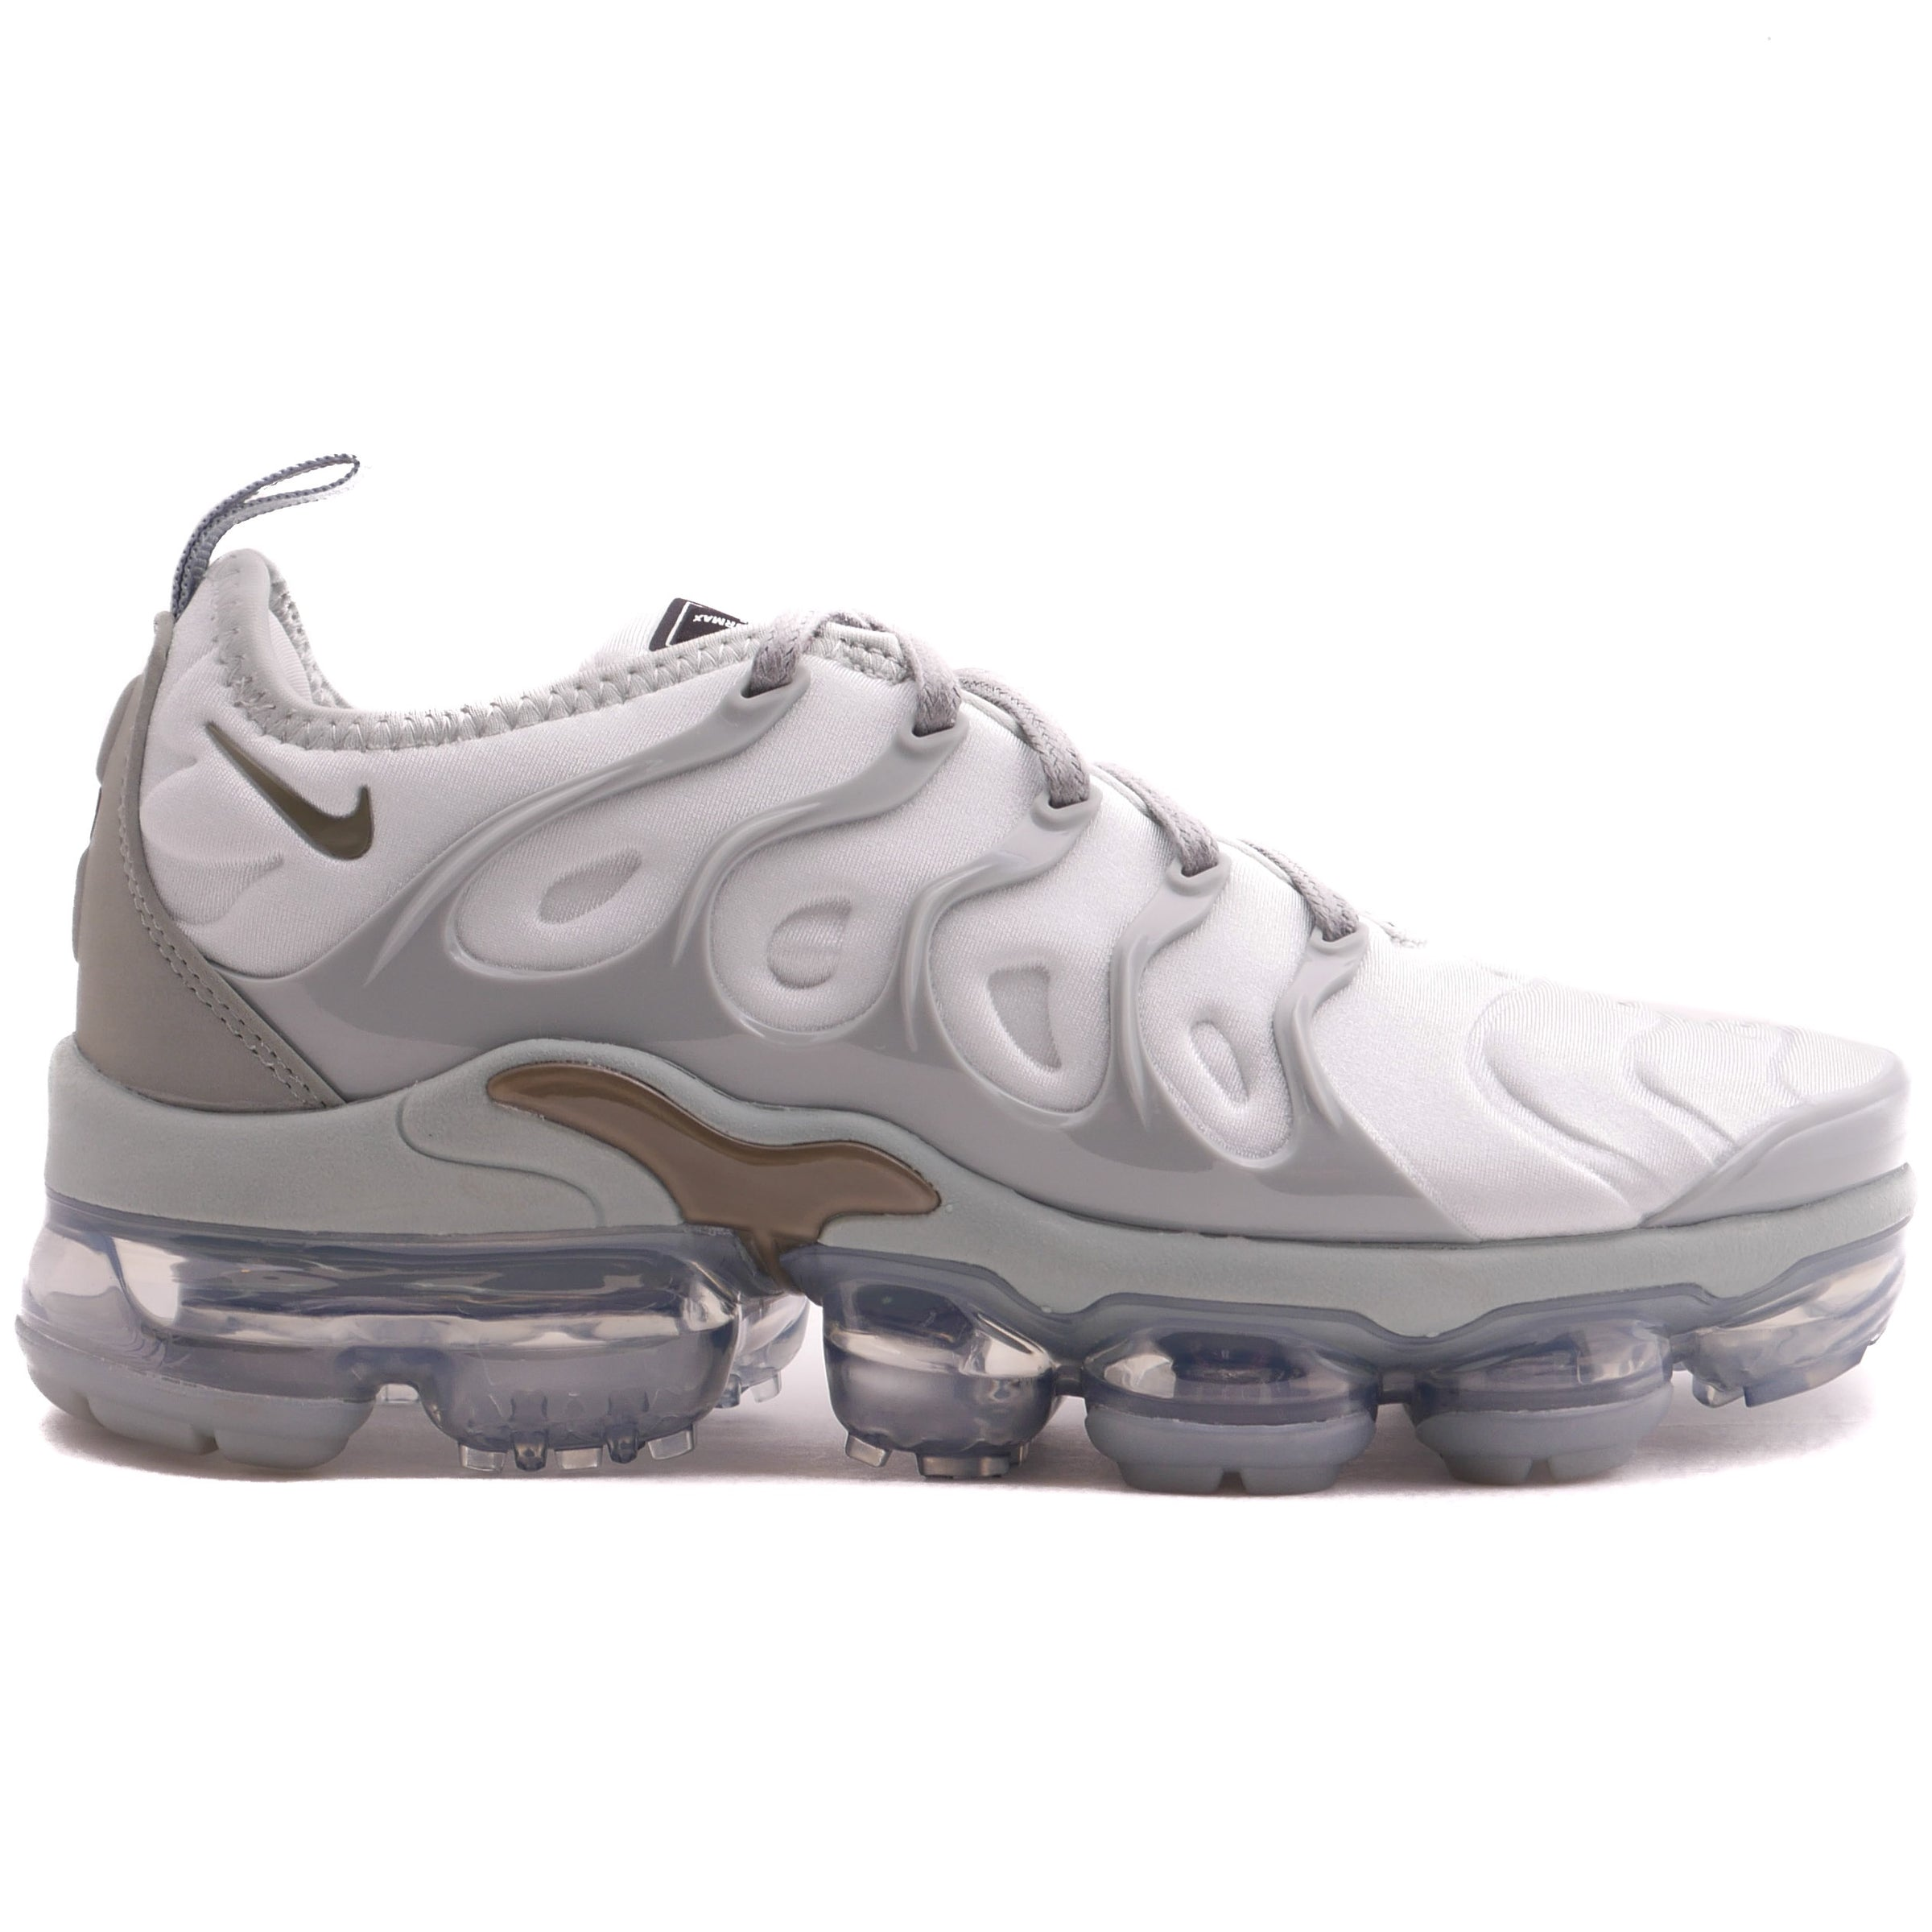 bcbc3e044e6 Nike Women s Air Vapormax Plus Light Silver – Puffer Reds